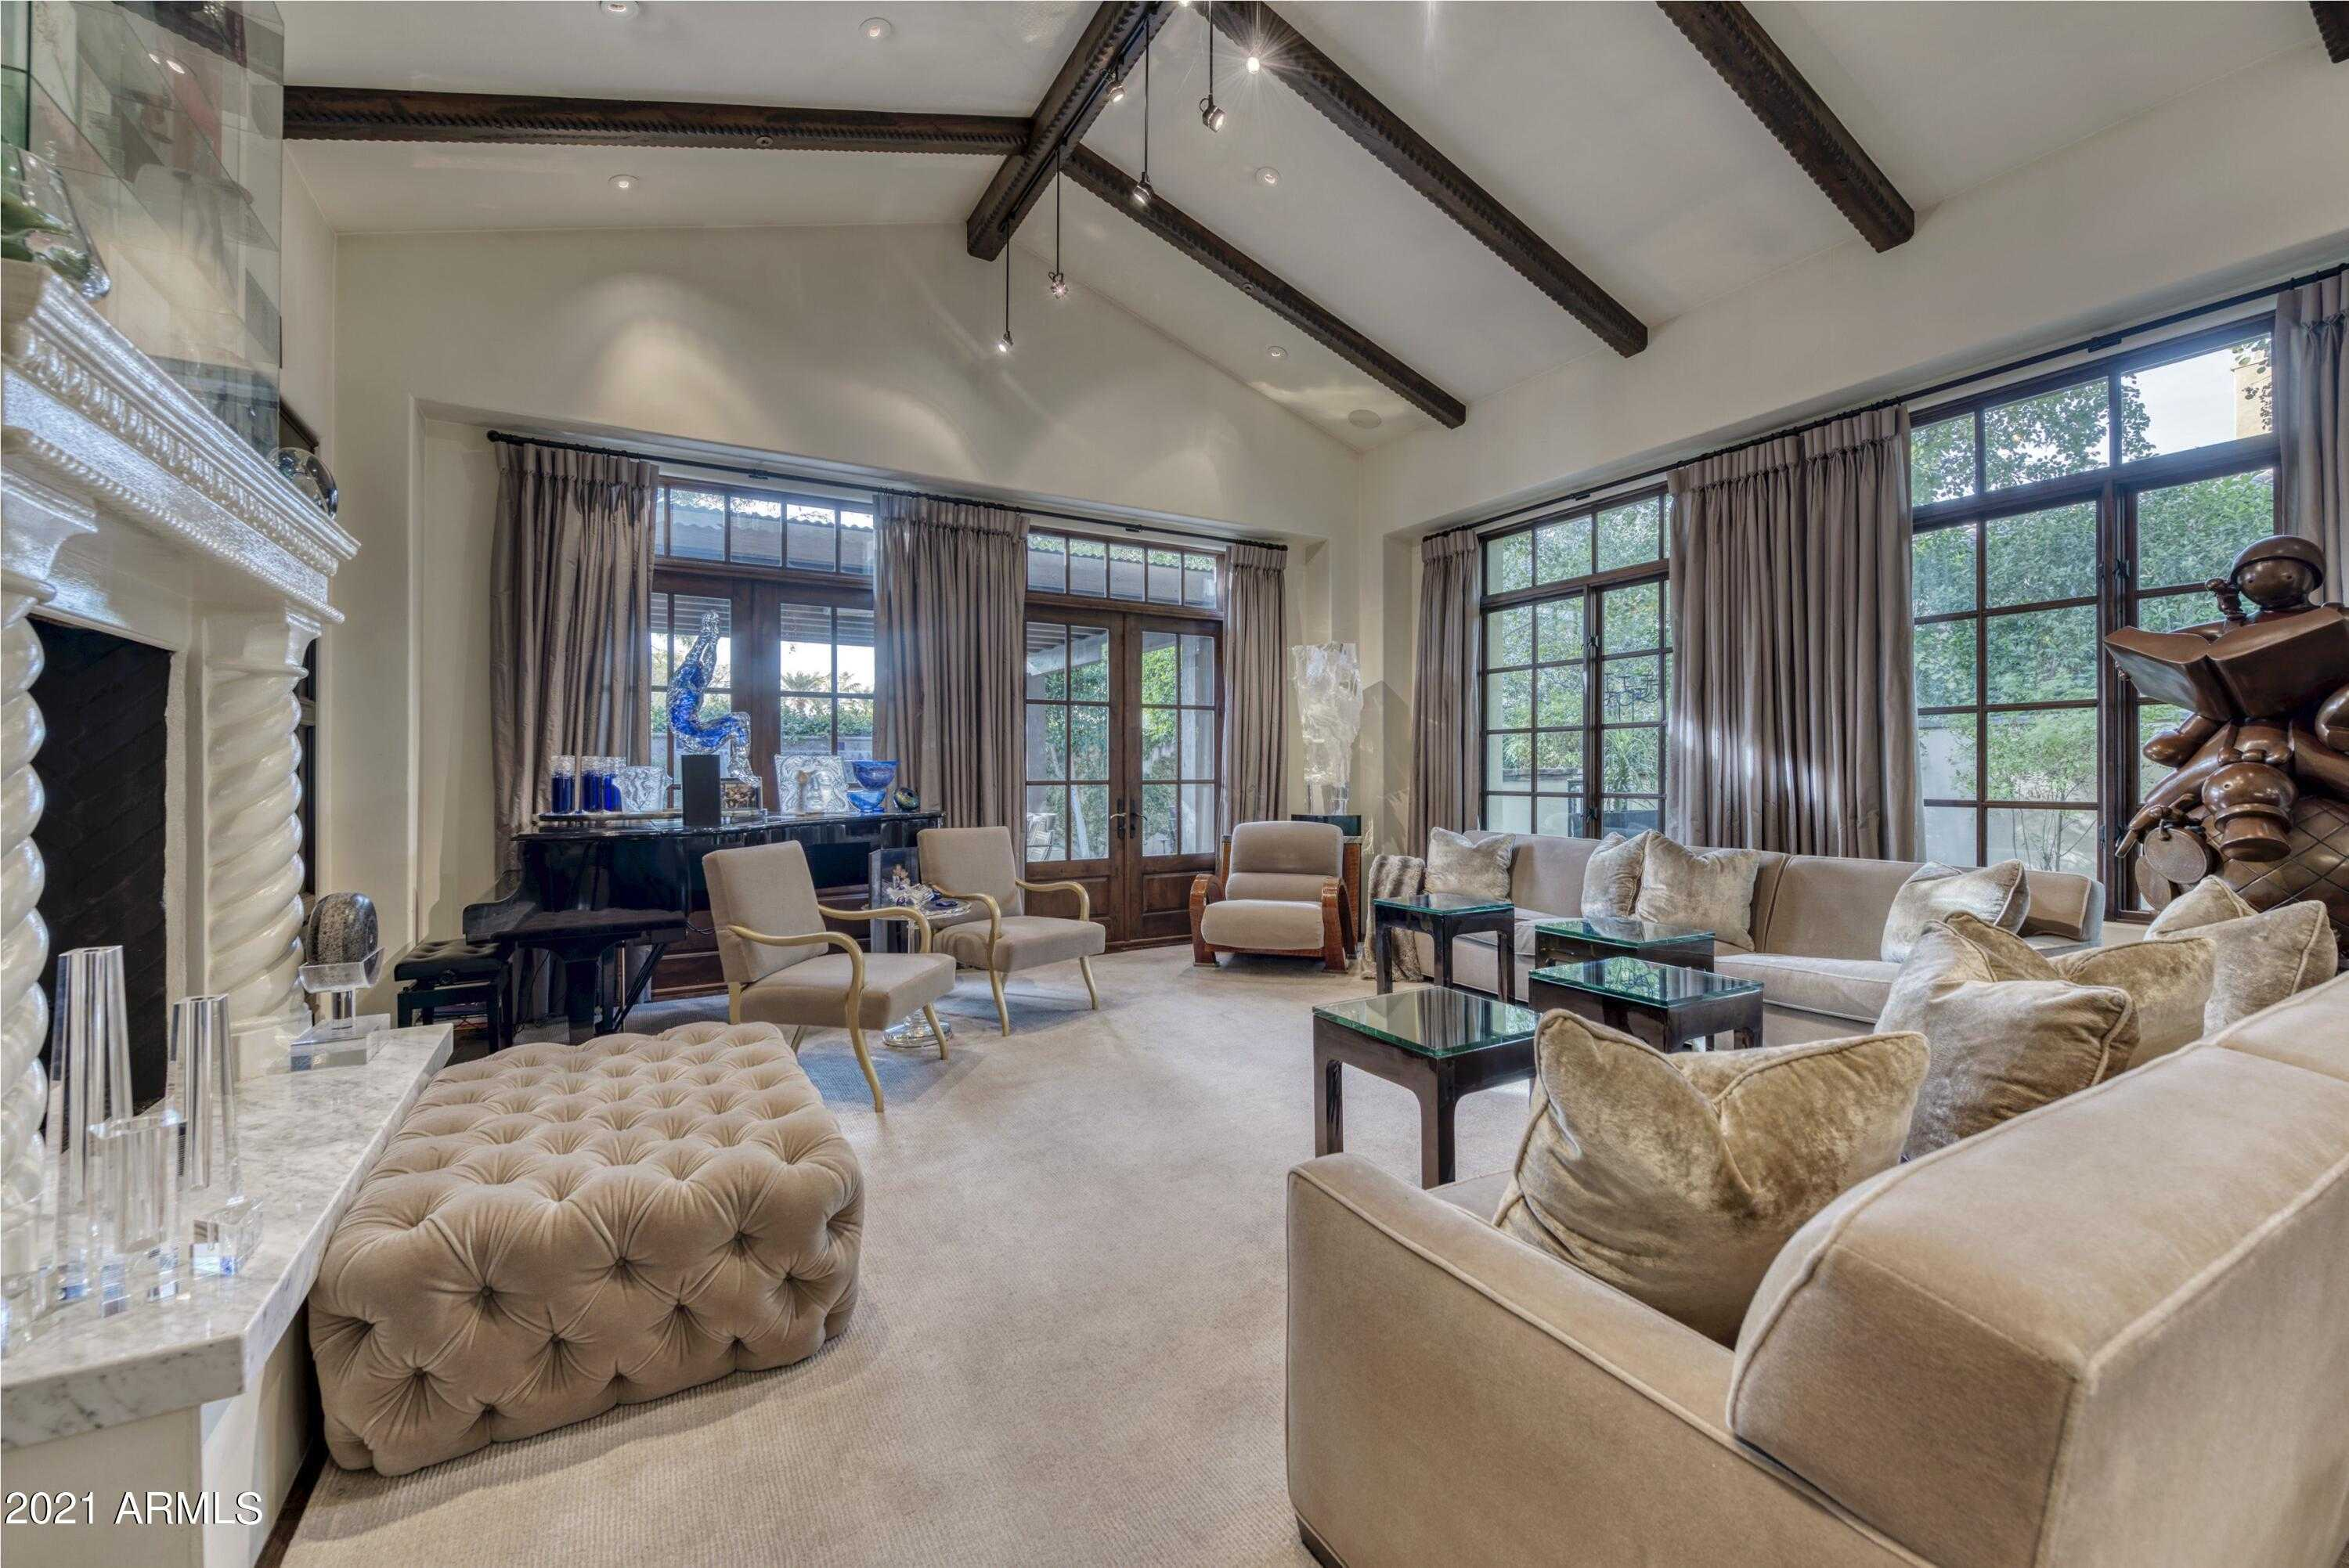 $2,680,000 - 4Br/6Ba - Home for Sale in Montelucia Resort & Spa Residences, Paradise Valley